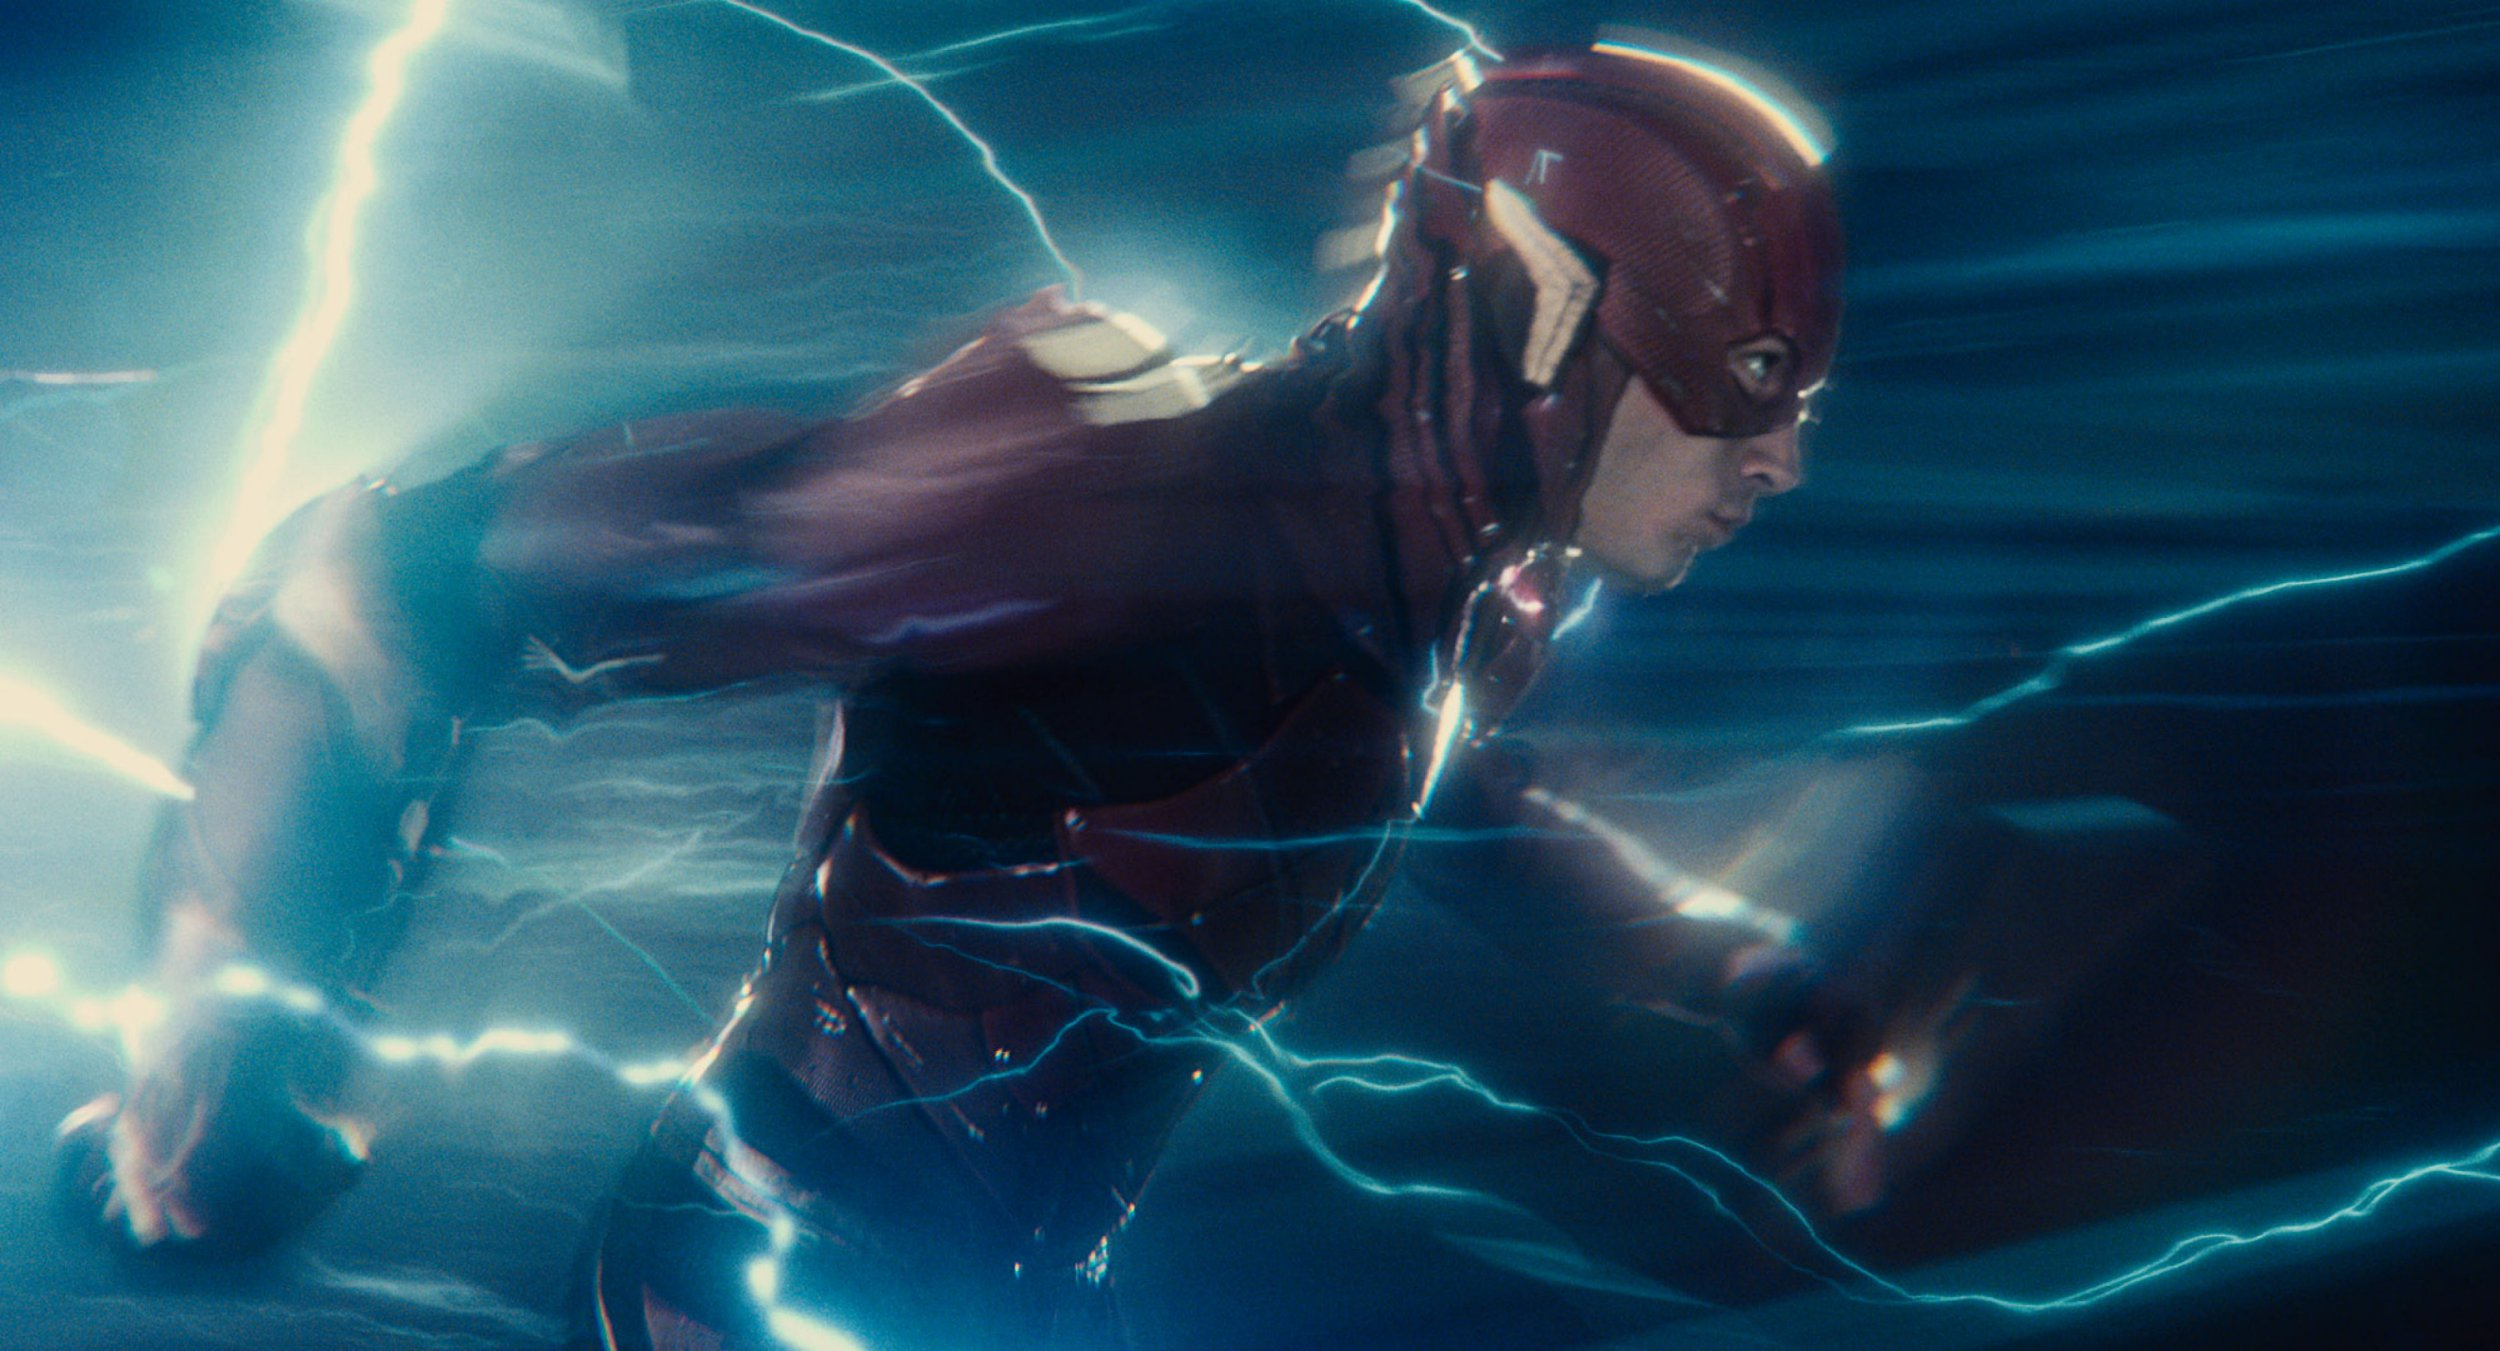 Fans finally get to know why DC did not show Flash's second suit in Justice League